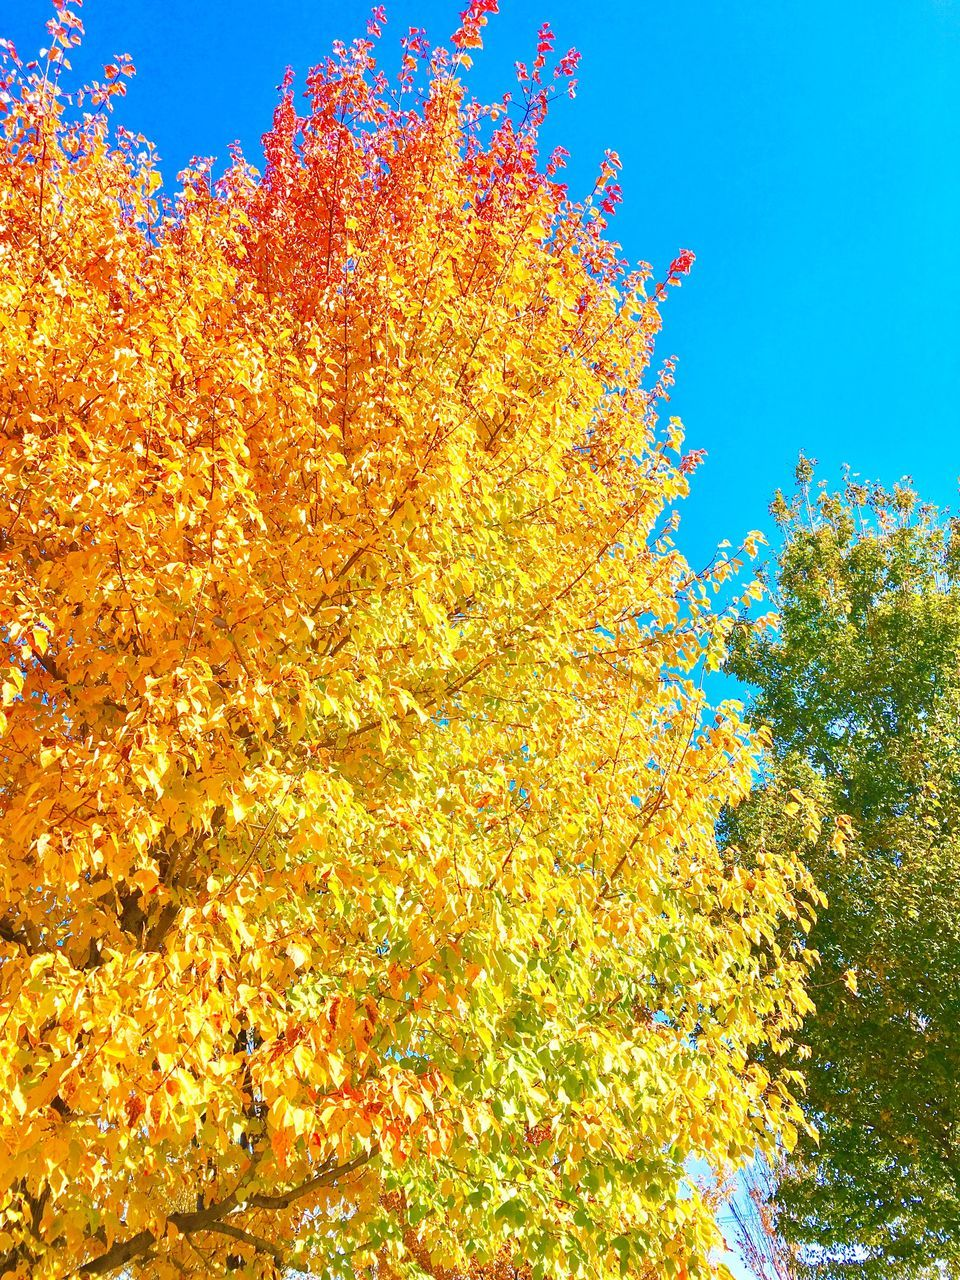 autumn, change, tree, nature, beauty in nature, leaf, day, no people, outdoors, growth, low angle view, yellow, blue, sky, branch, scenics, flower, close-up, freshness